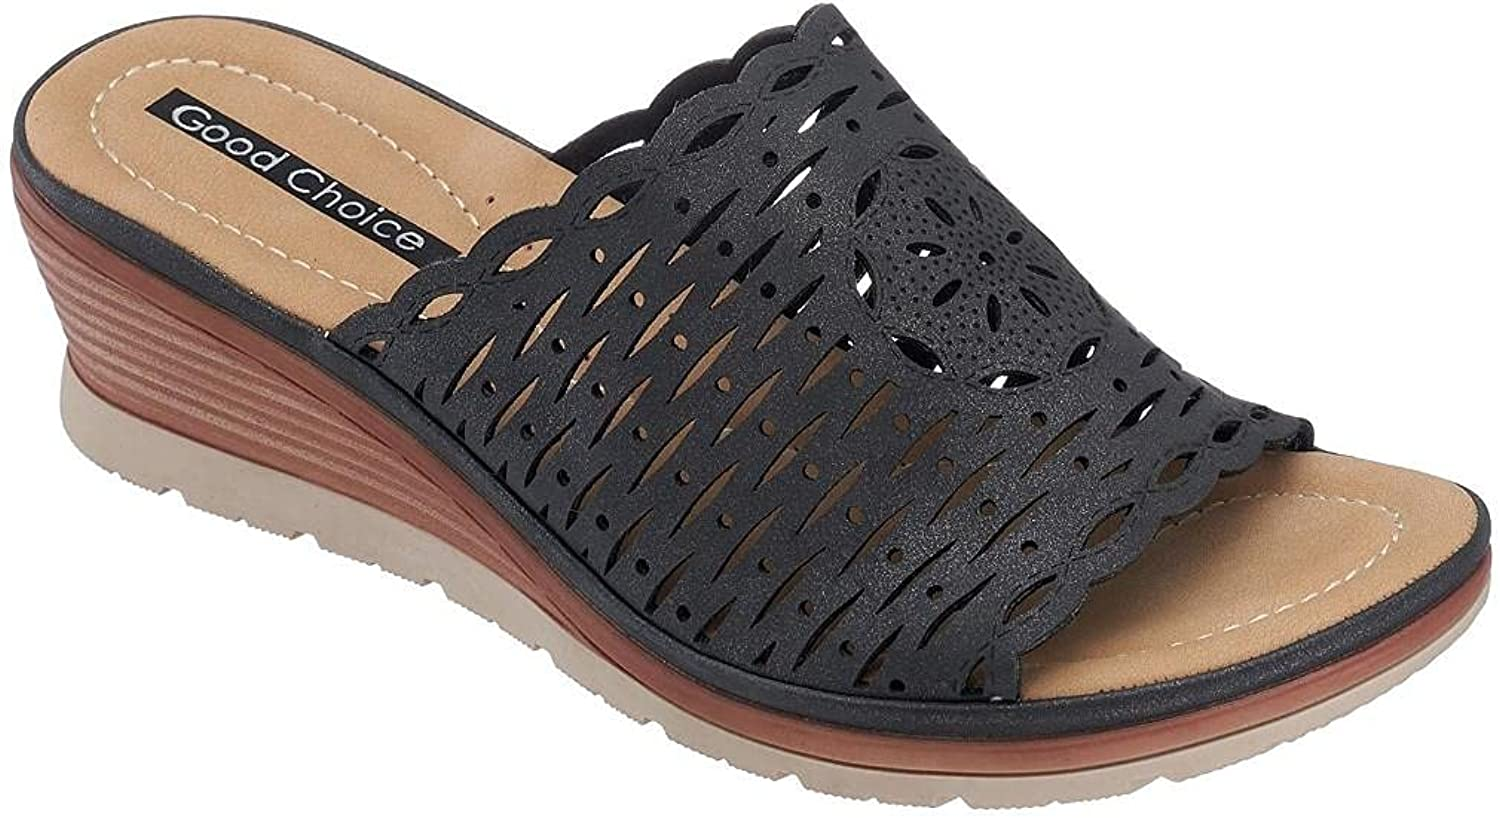 GC Shoes Womens Maddy Wedge Sandal Slides